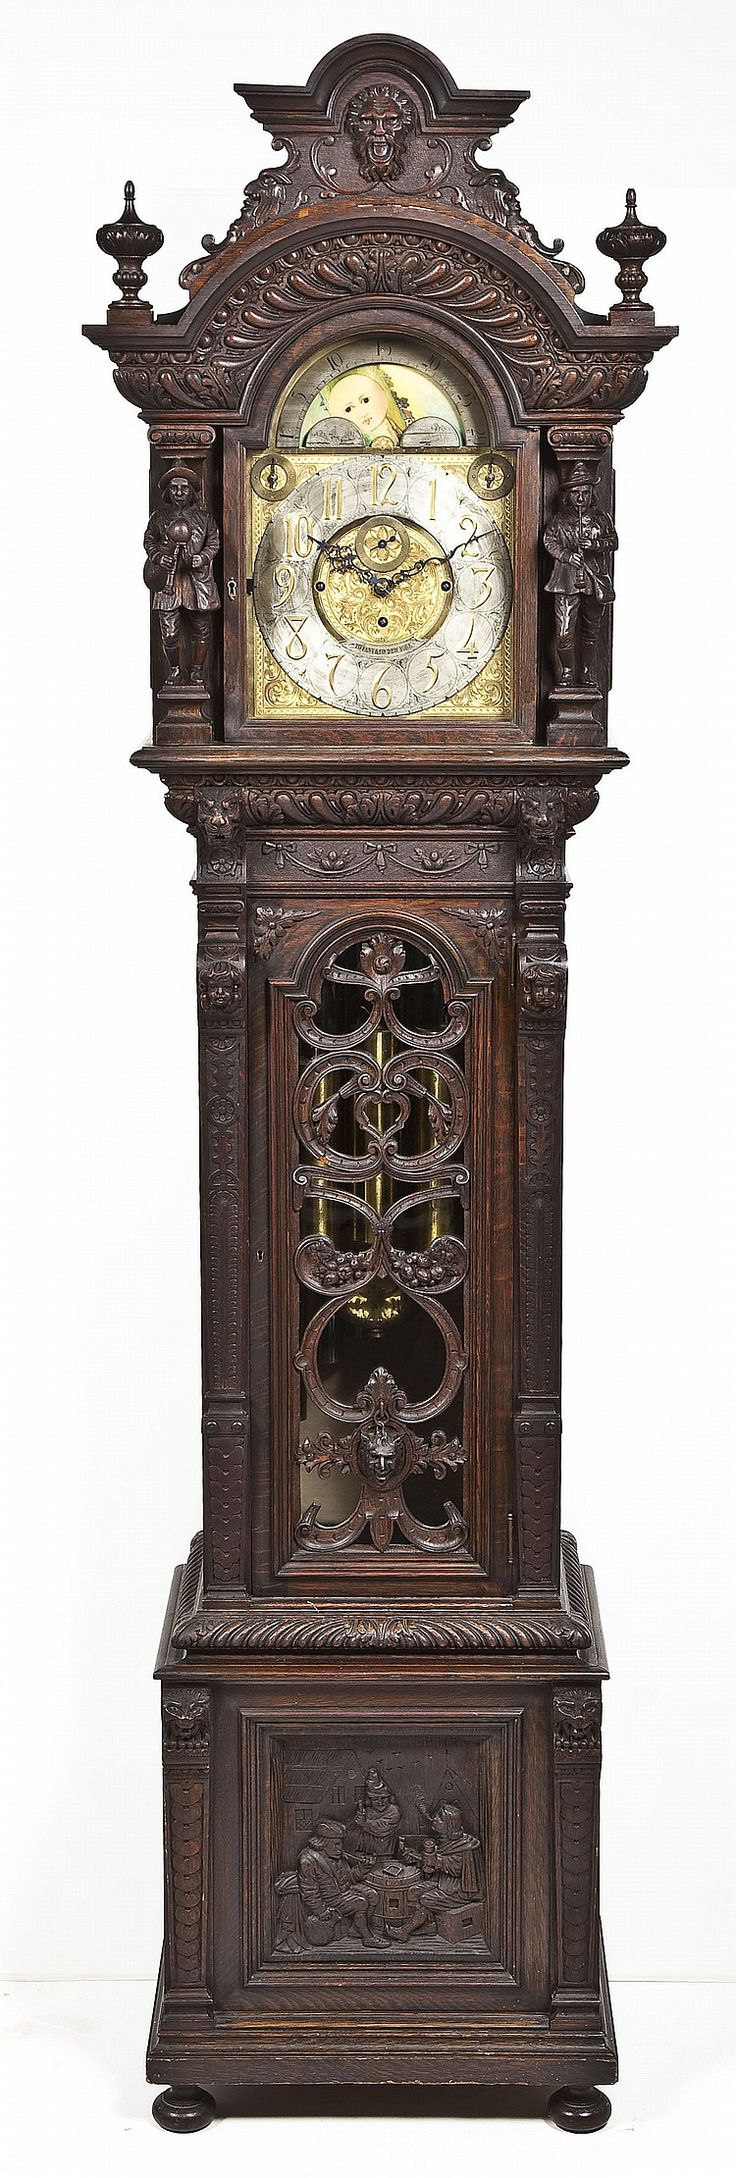 """Sold: $17,000 - Tiffany & Co. Tall Case Clock. Nine tube tall case clock. Dial signed Tiffany & Co. Oak case profusely carved with full figure musicians on hood and tavern scene on base. Side columns with lions' heads and putti. Door with scrollwork, fruit and satyr head. Silvered chapter ring over ornate face. Moon phase. Subsidiary seconds. Westminster eight bell chime. Nine tube. Tubes marked """"Walter Durfee"""". Late 19th century."""